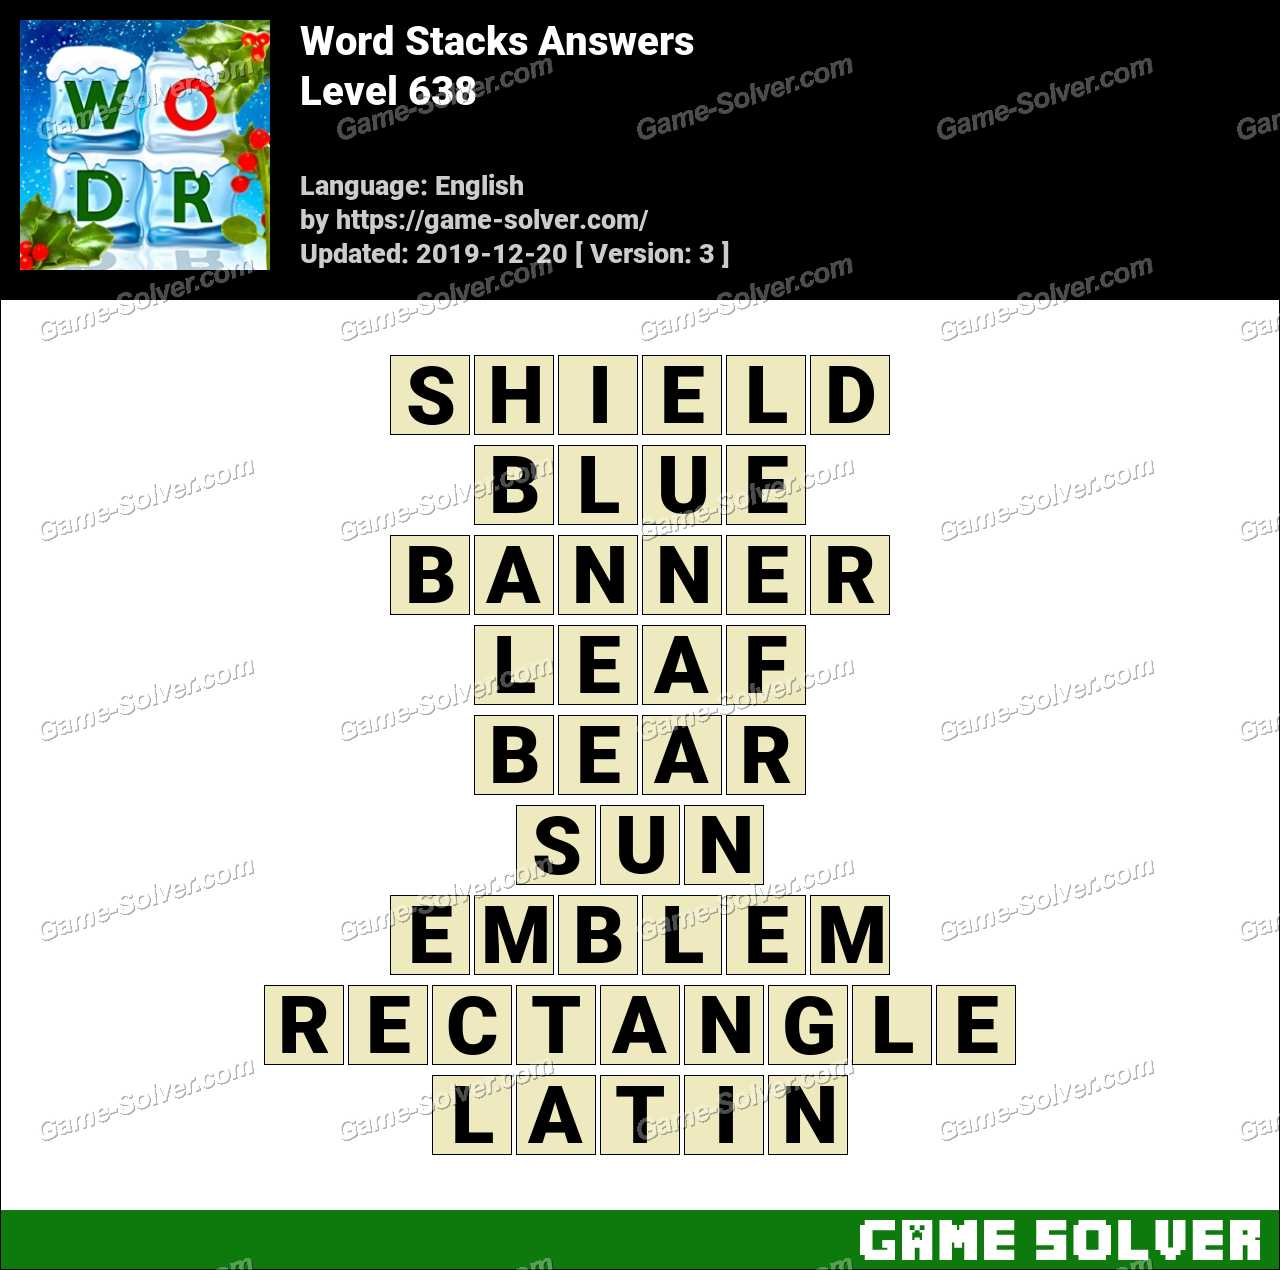 Word Stacks Level 638 Answers